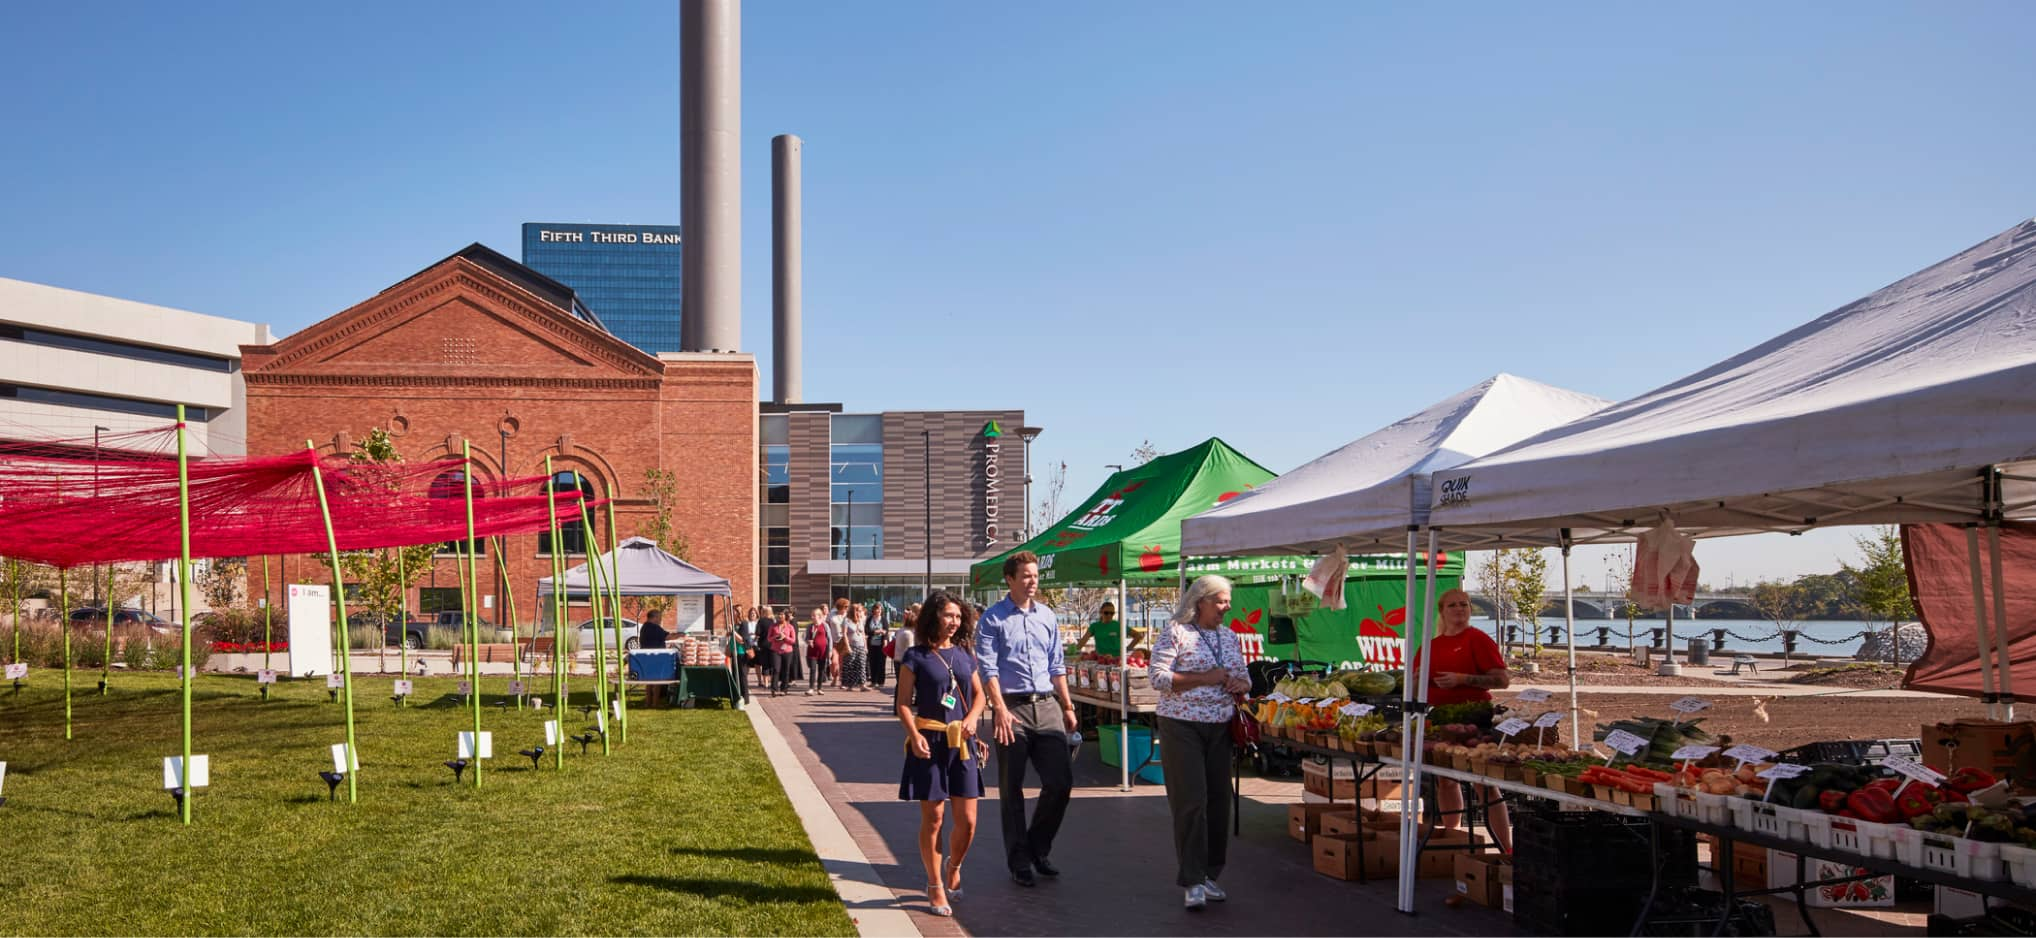 With wide promenades and green spaces suitable for a variety of uses from farmer's markets to festivals, ProMedica Headquarters in Toledo, Ohio, takes advantage of new and historic buildings, and all the spaces in between.